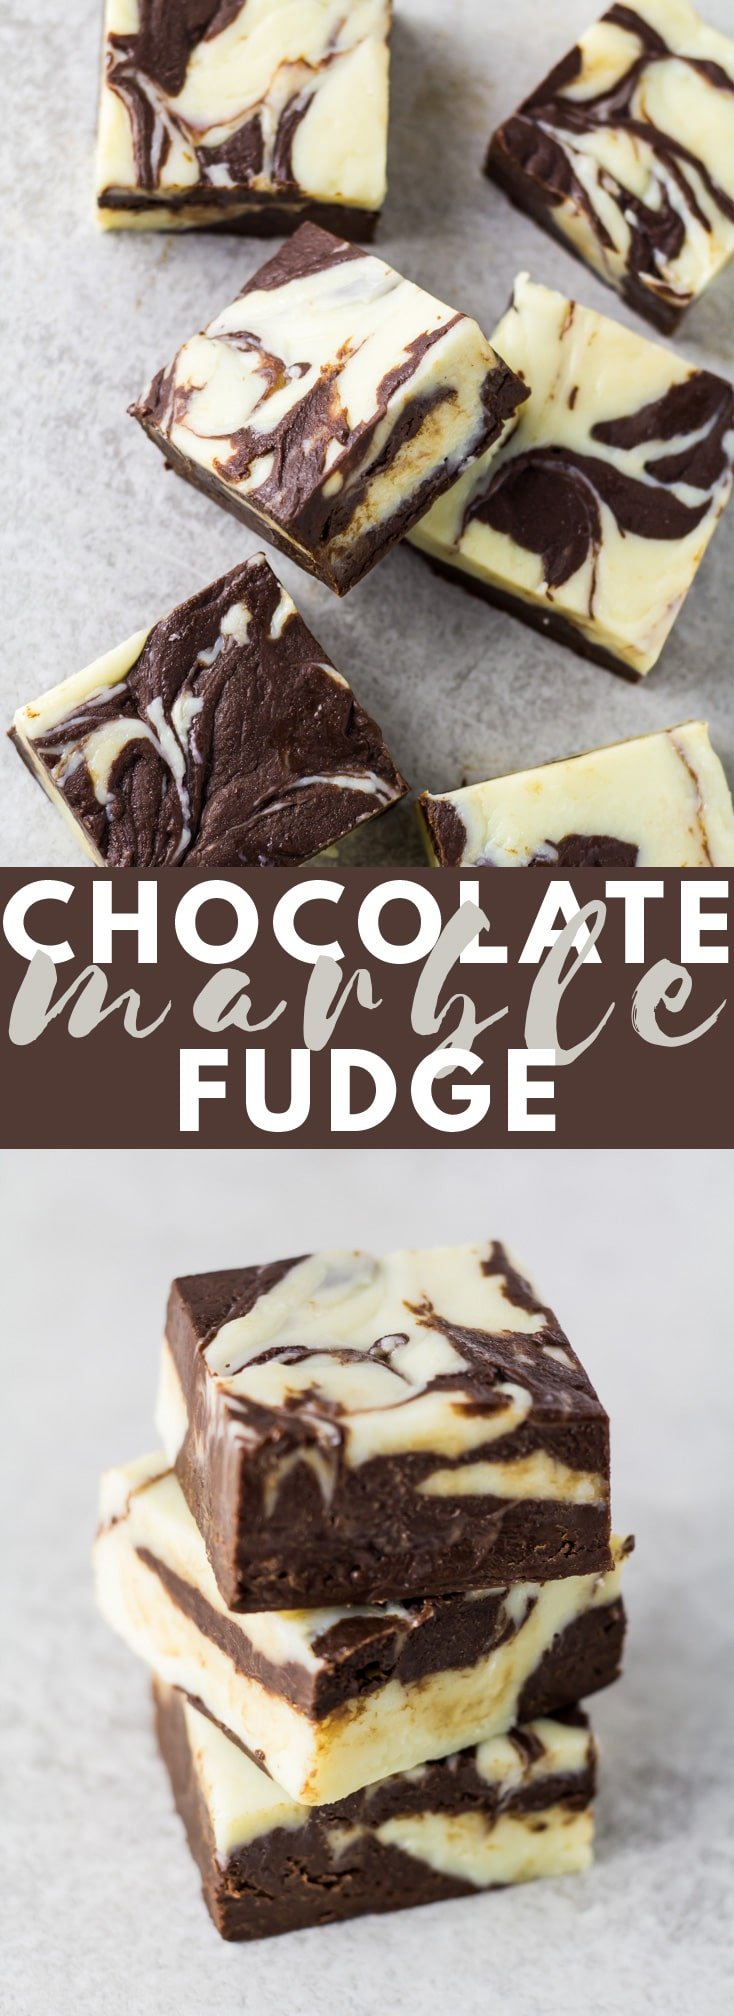 Chocolate Marble Fudge - A deliciously thick and creamy fudge that uses dark chocolate and white chocolate to create a beautiful marble effect!